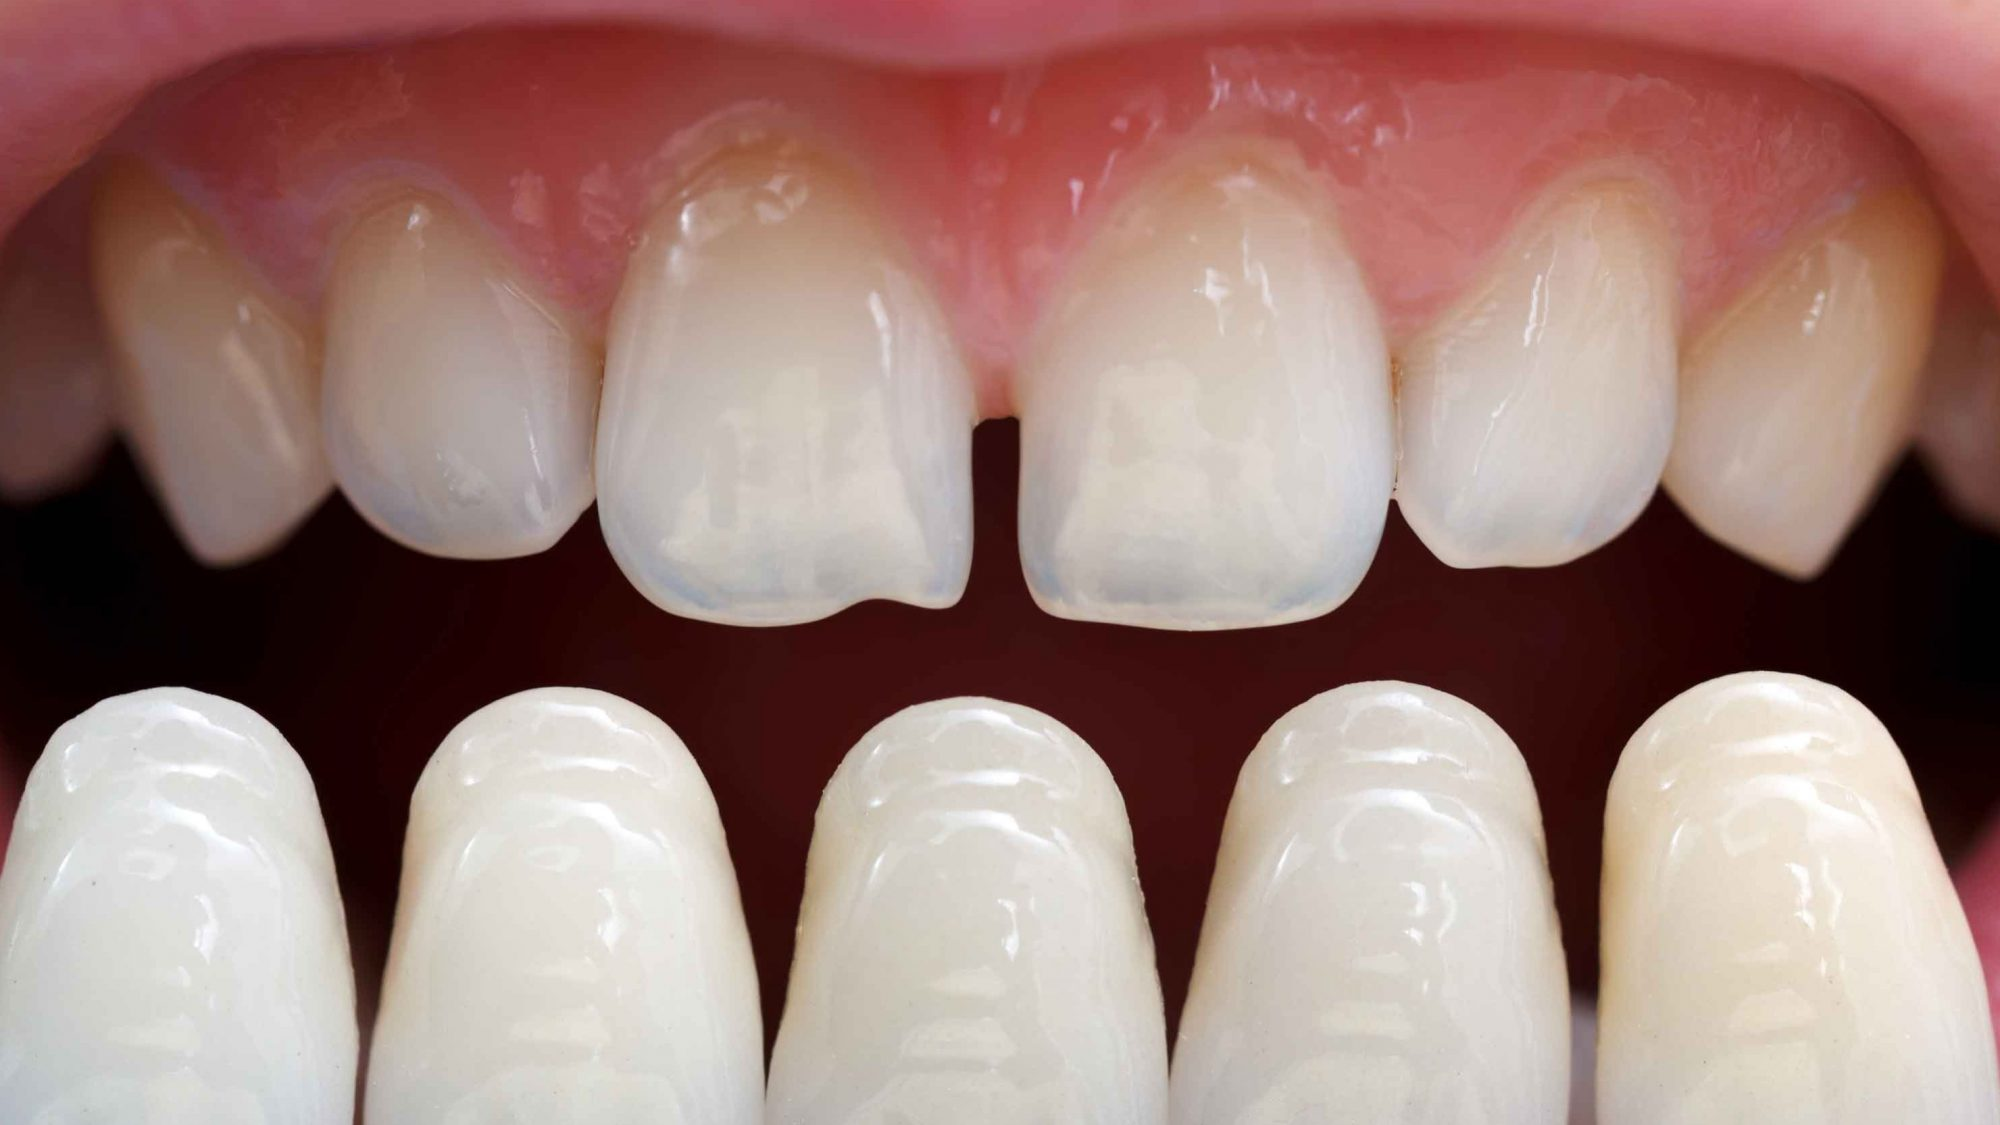 dental crowns front teeth before and after Lovely Porcelain veneers are thin shells of ceramic that bond directly to